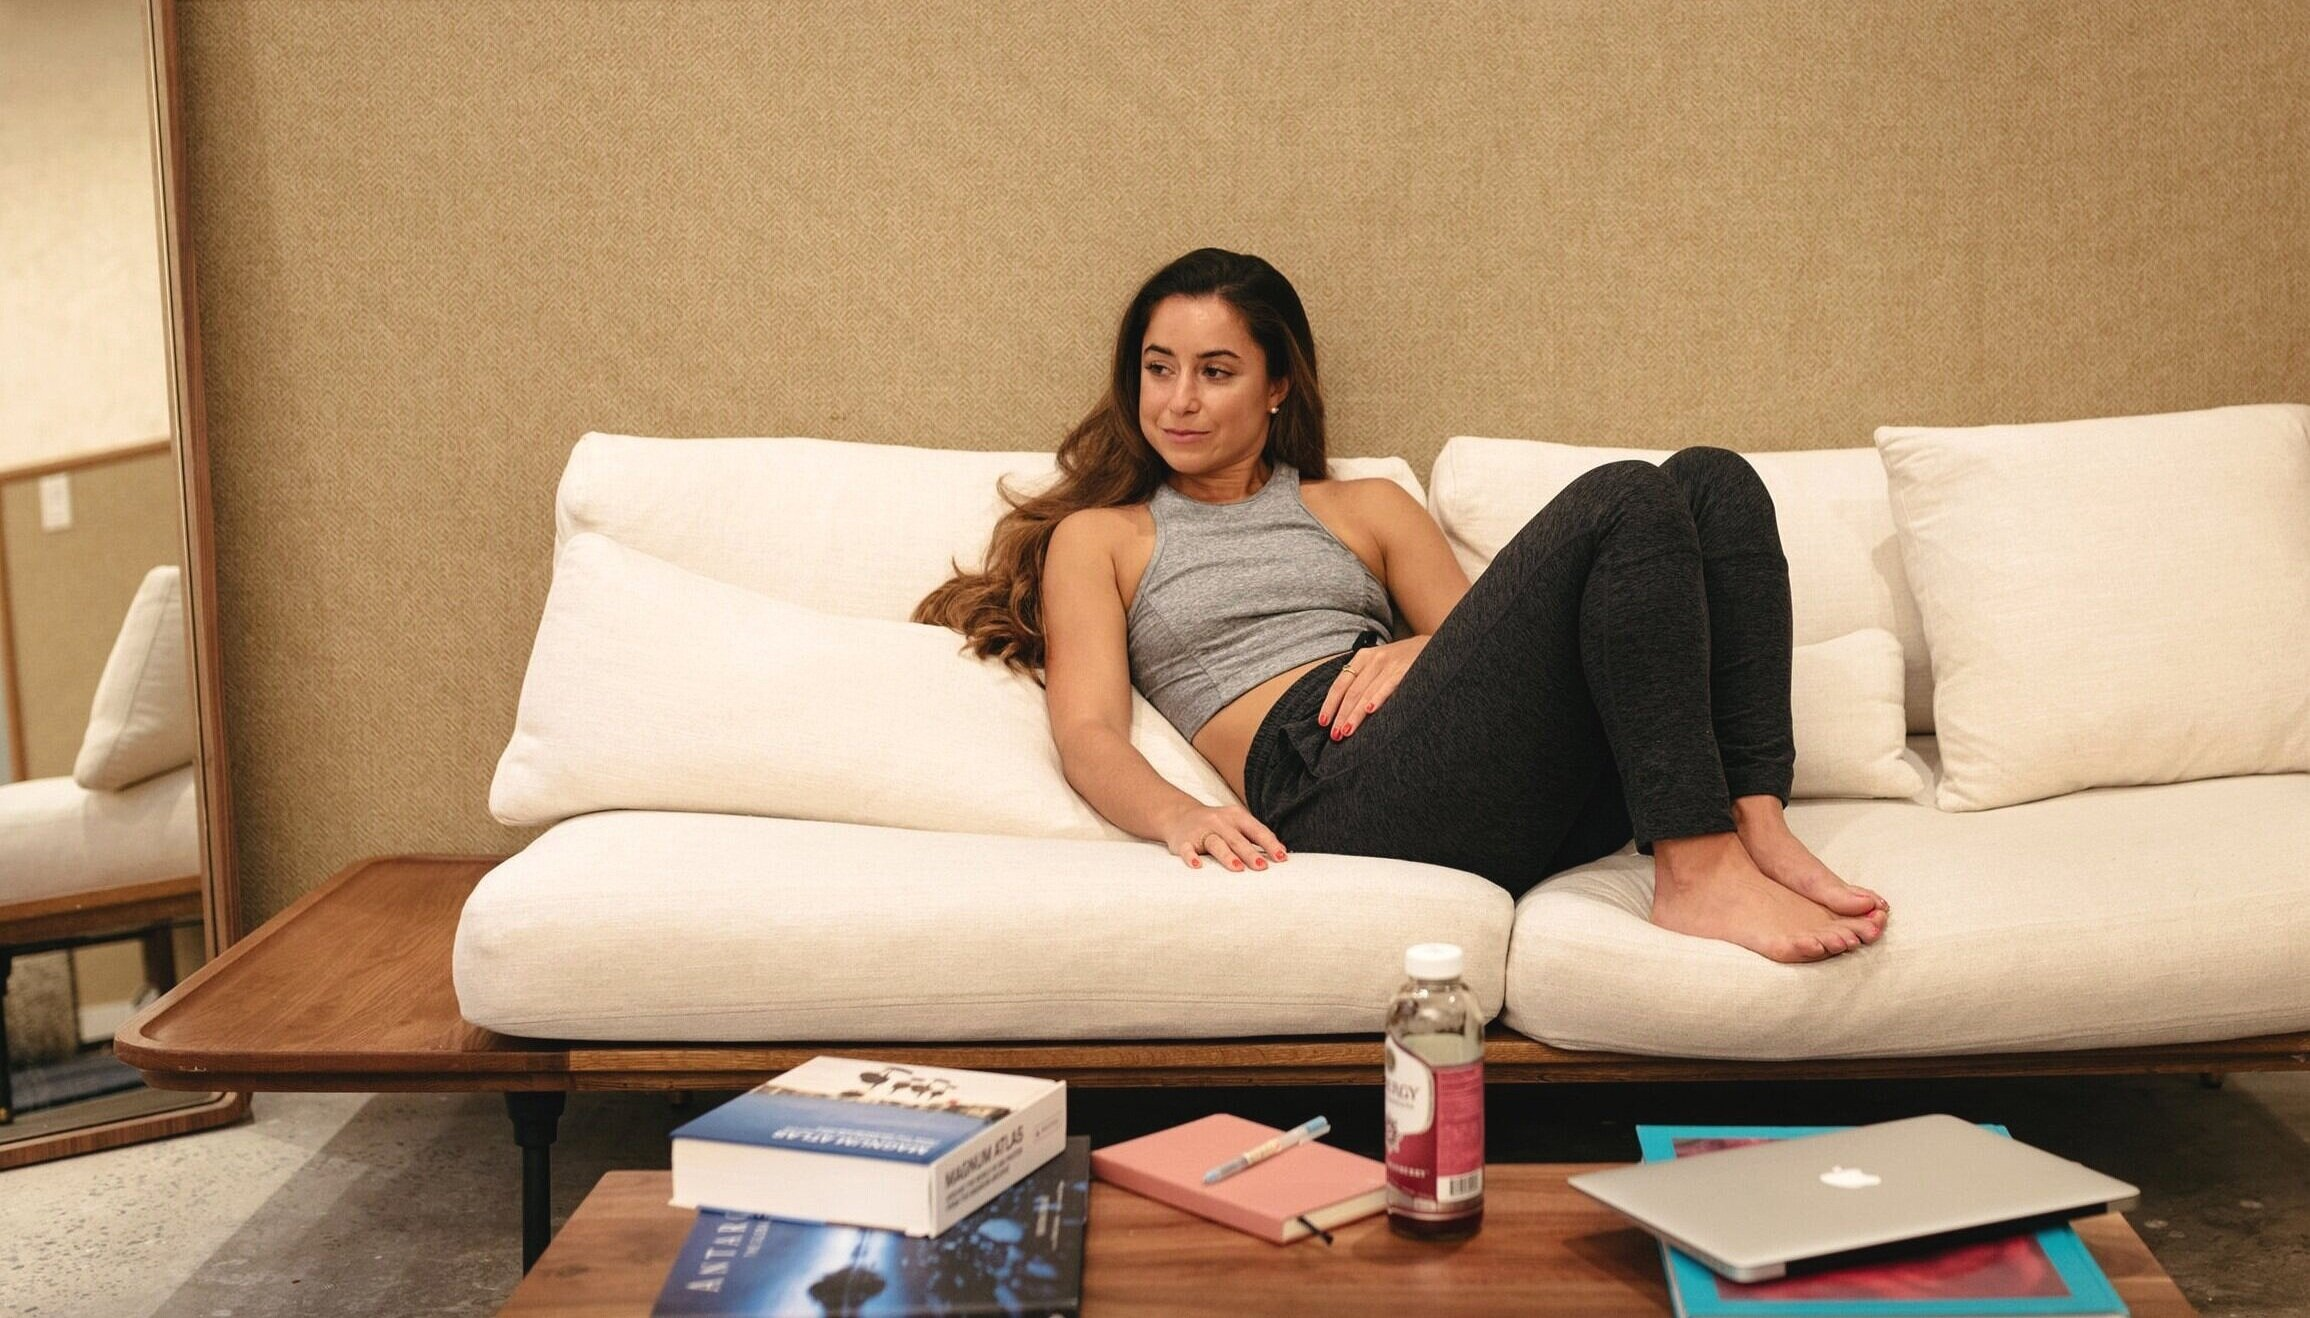 WFH? 8 THERAPEUTIC EXERCISES FOR YOUR 8-HOUR WORK DAY